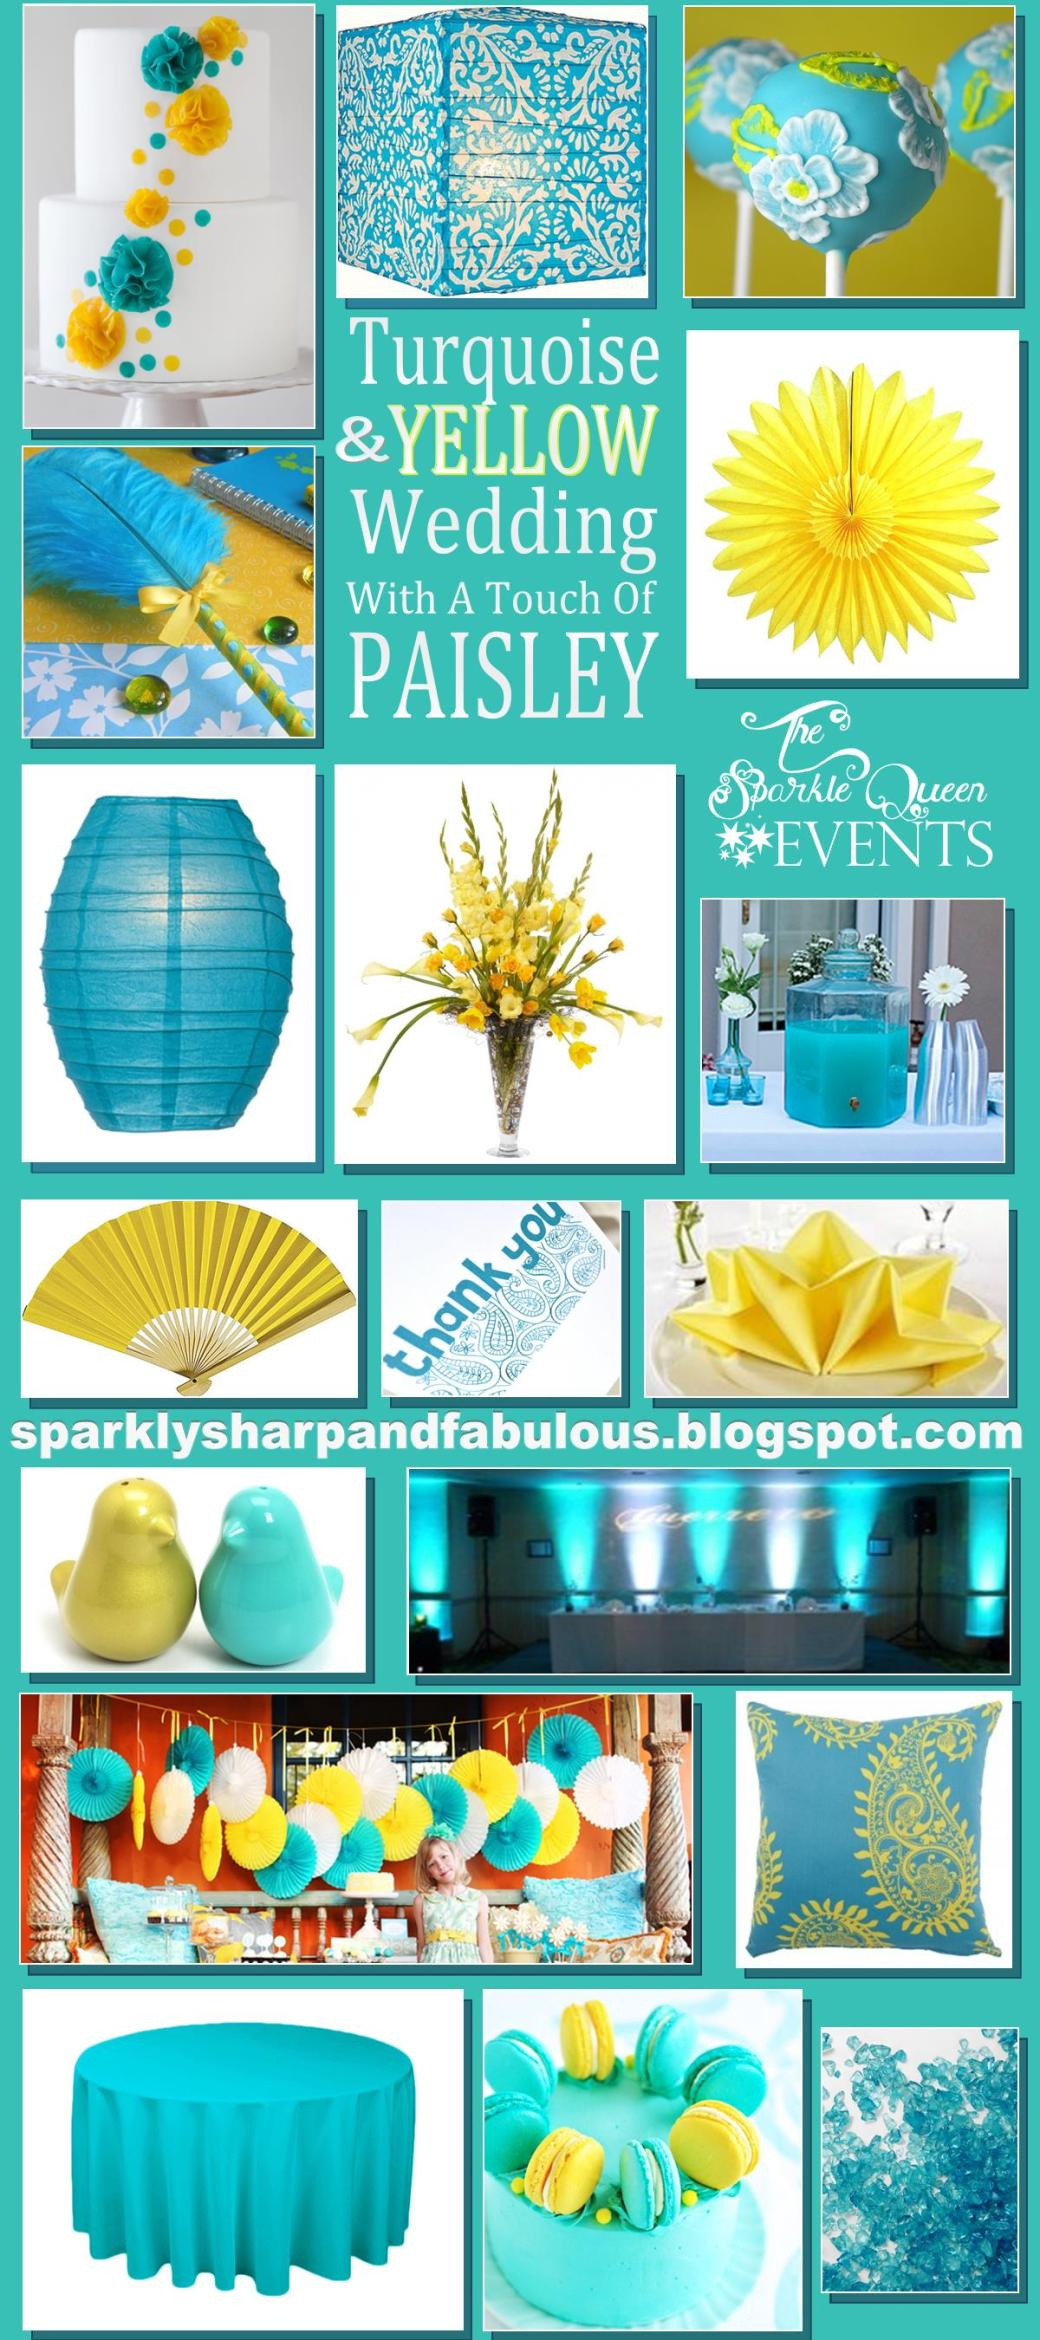 Turquoise and Yellow Wedding {with a hint of PAISLEY}